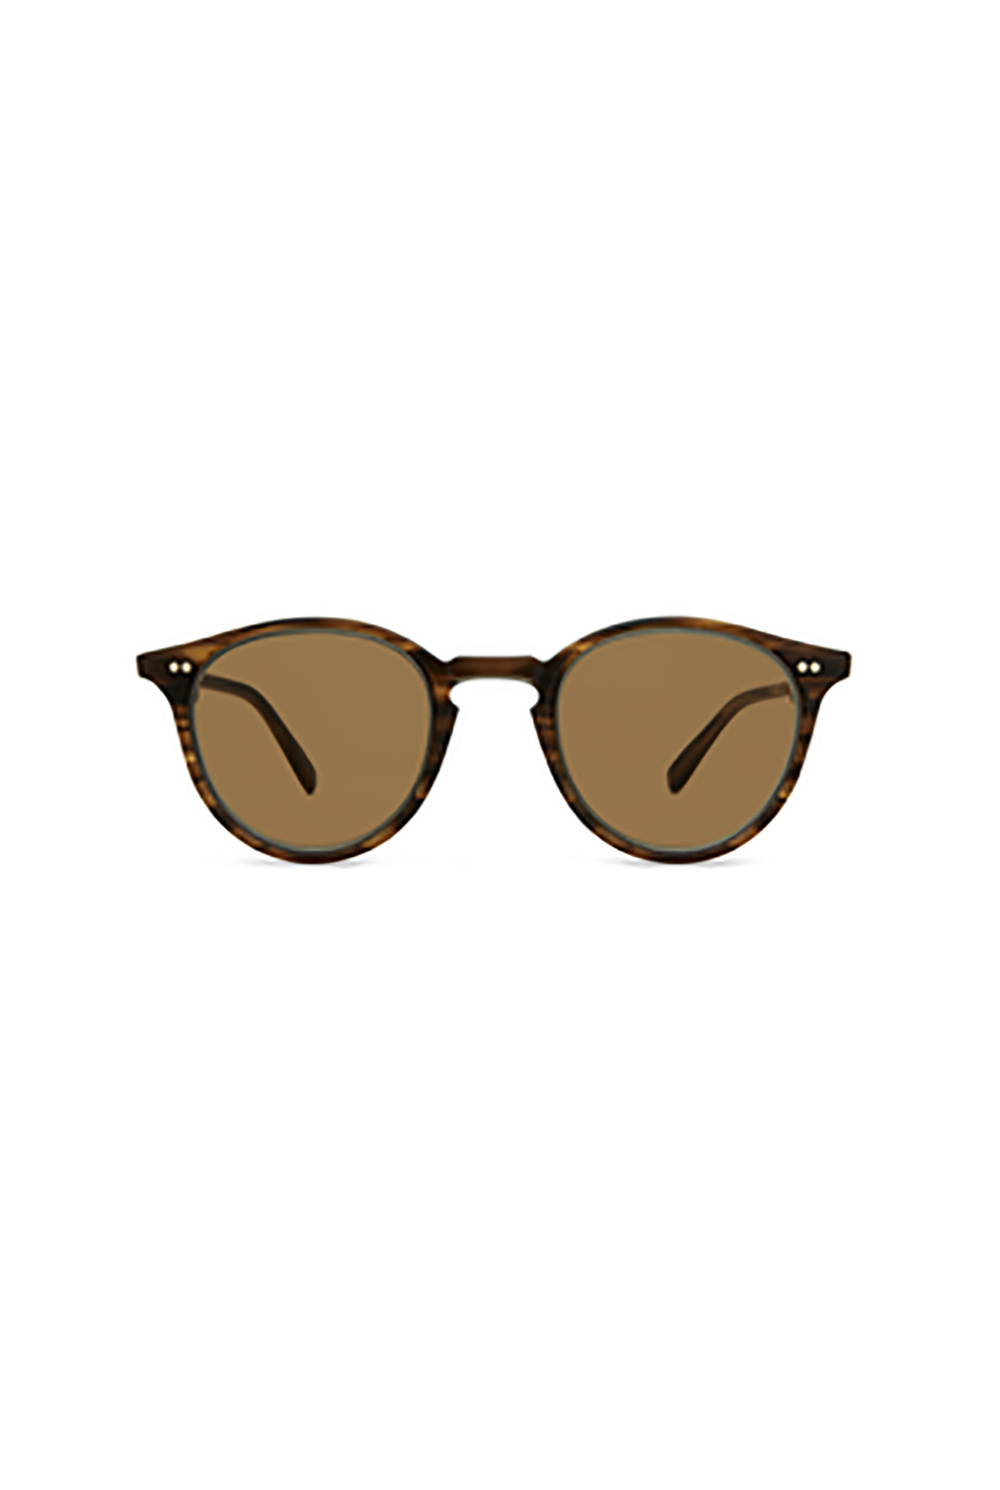 Marmont S48 Matte-Driftwood-Antique Gold/Semi-Flat Brown